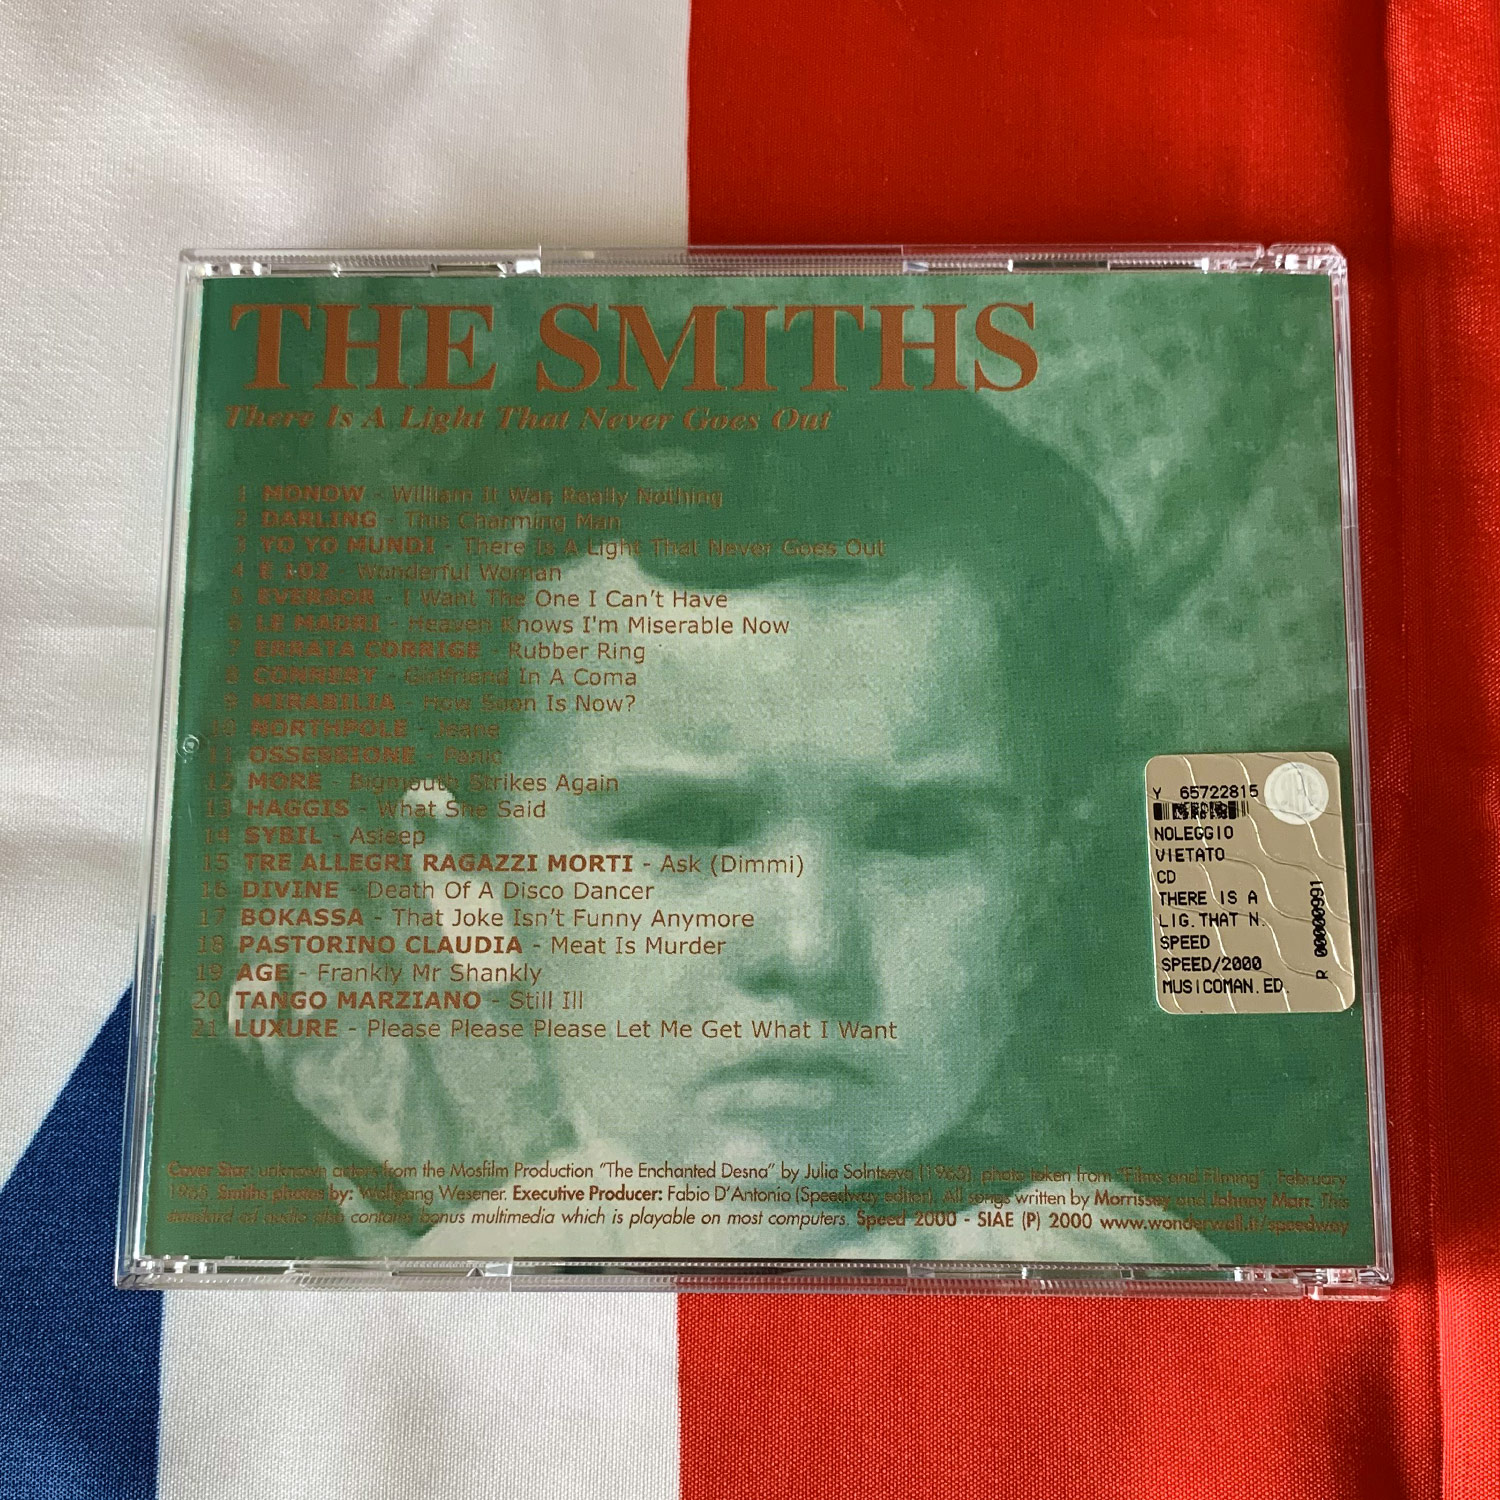 Smiths_CD_tribute05.jpg